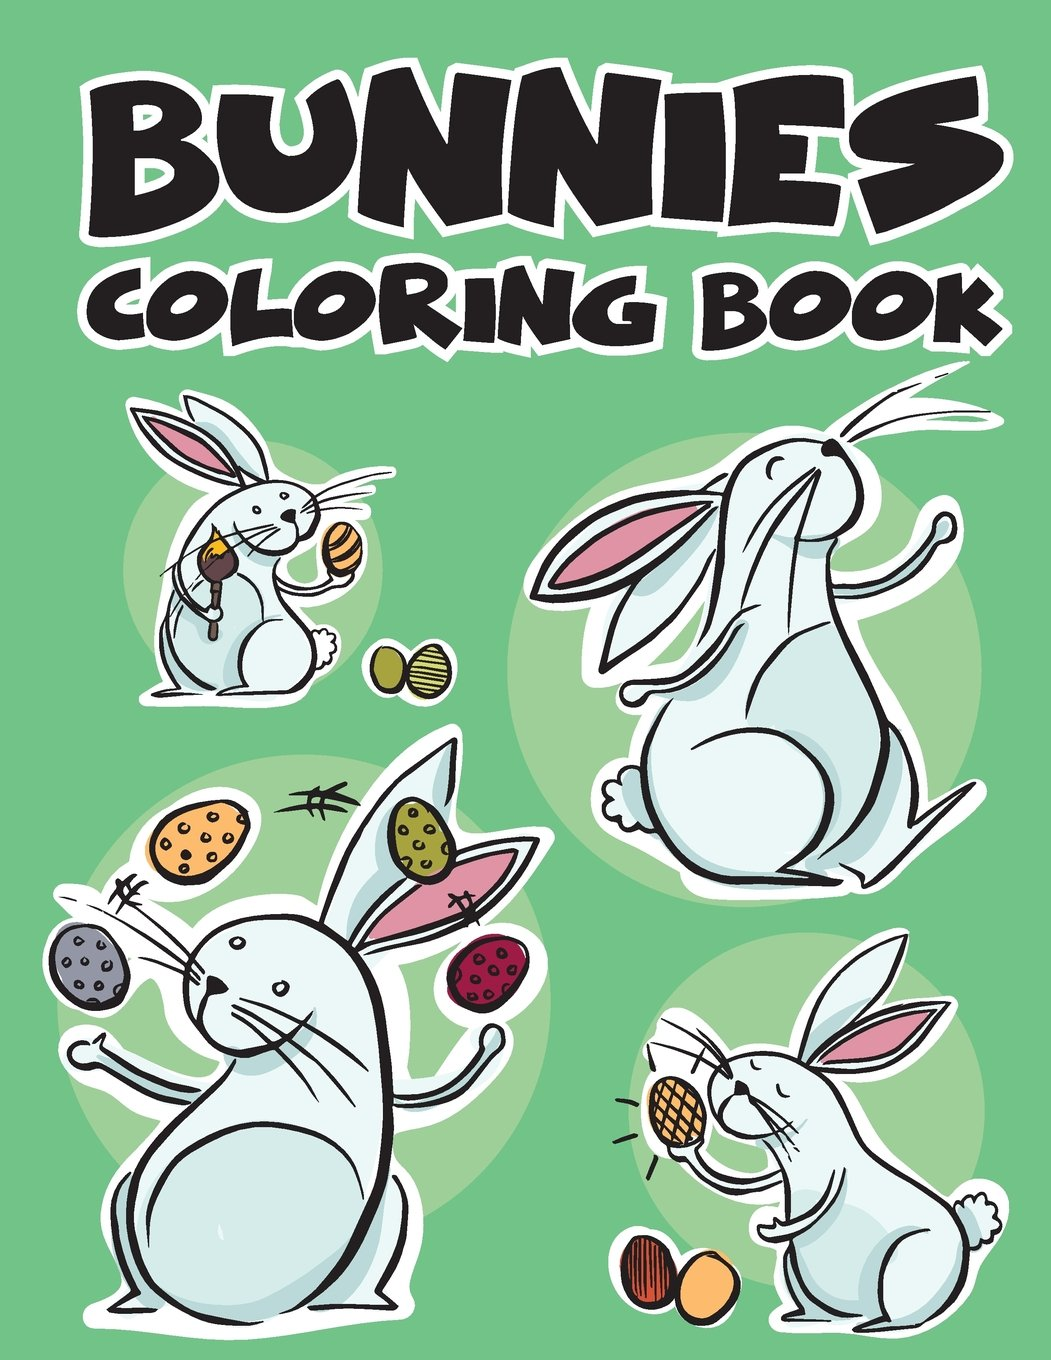 Download Bunnies Rabbit Easy coloring book for kids toddler, Imagination learning in school and home: Kids coloring book helping brain function,creativity, and imagination perfected for boys and girls pdf epub